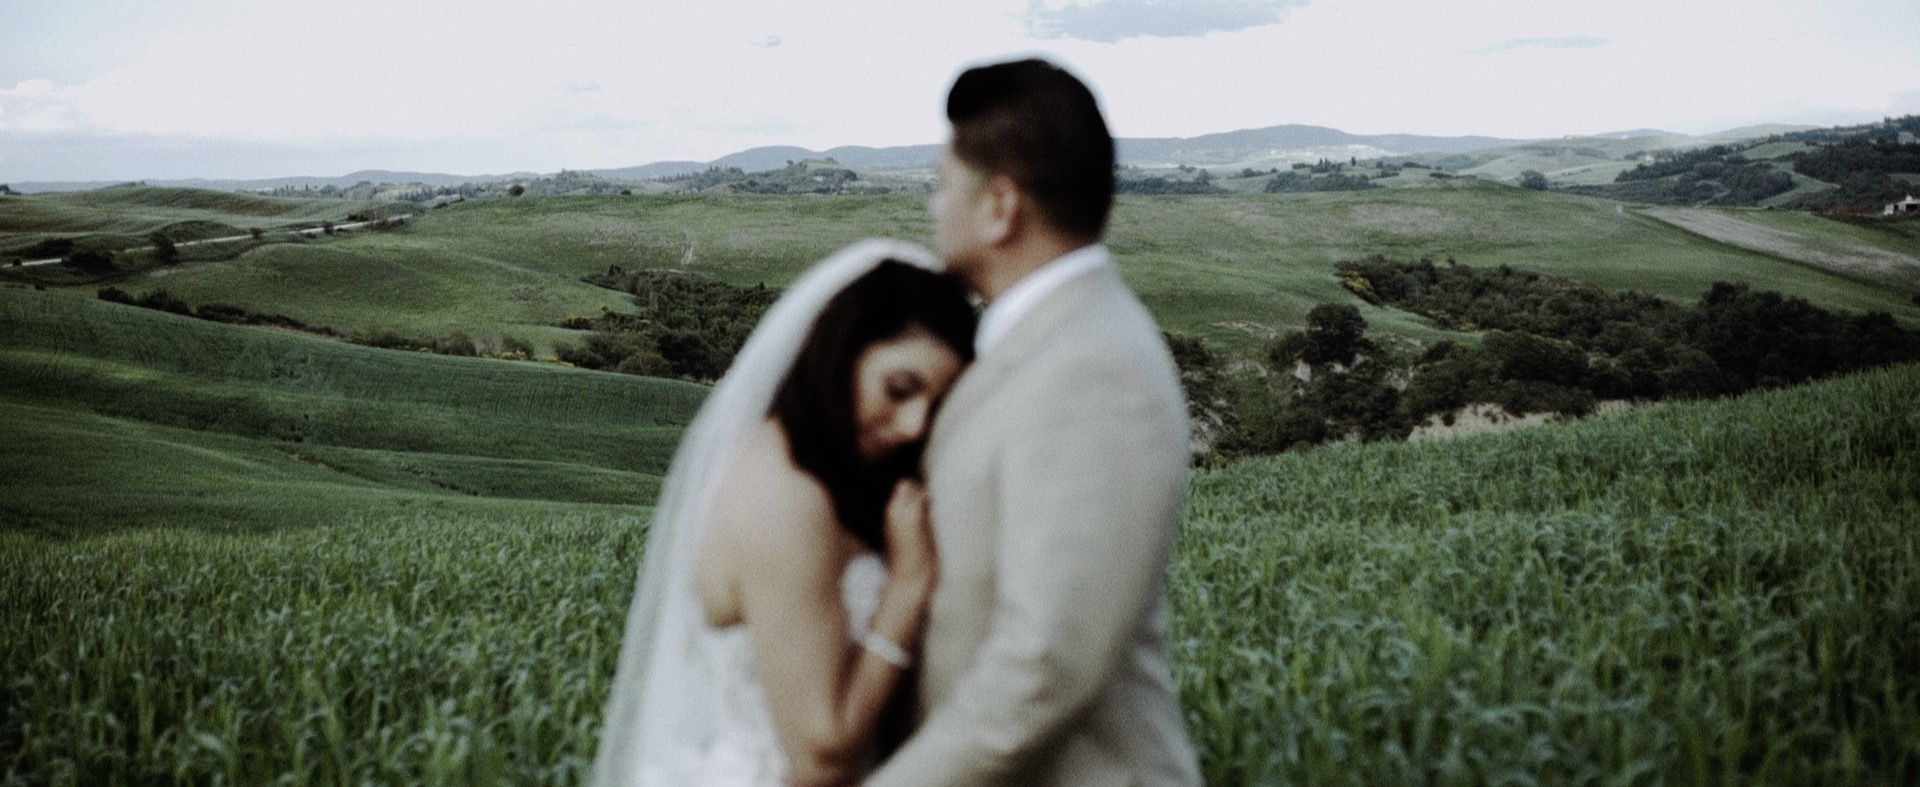 Debbie, Wedding videos, wedding in tuscany, wedding in italy, best wedding films, videographer in italy